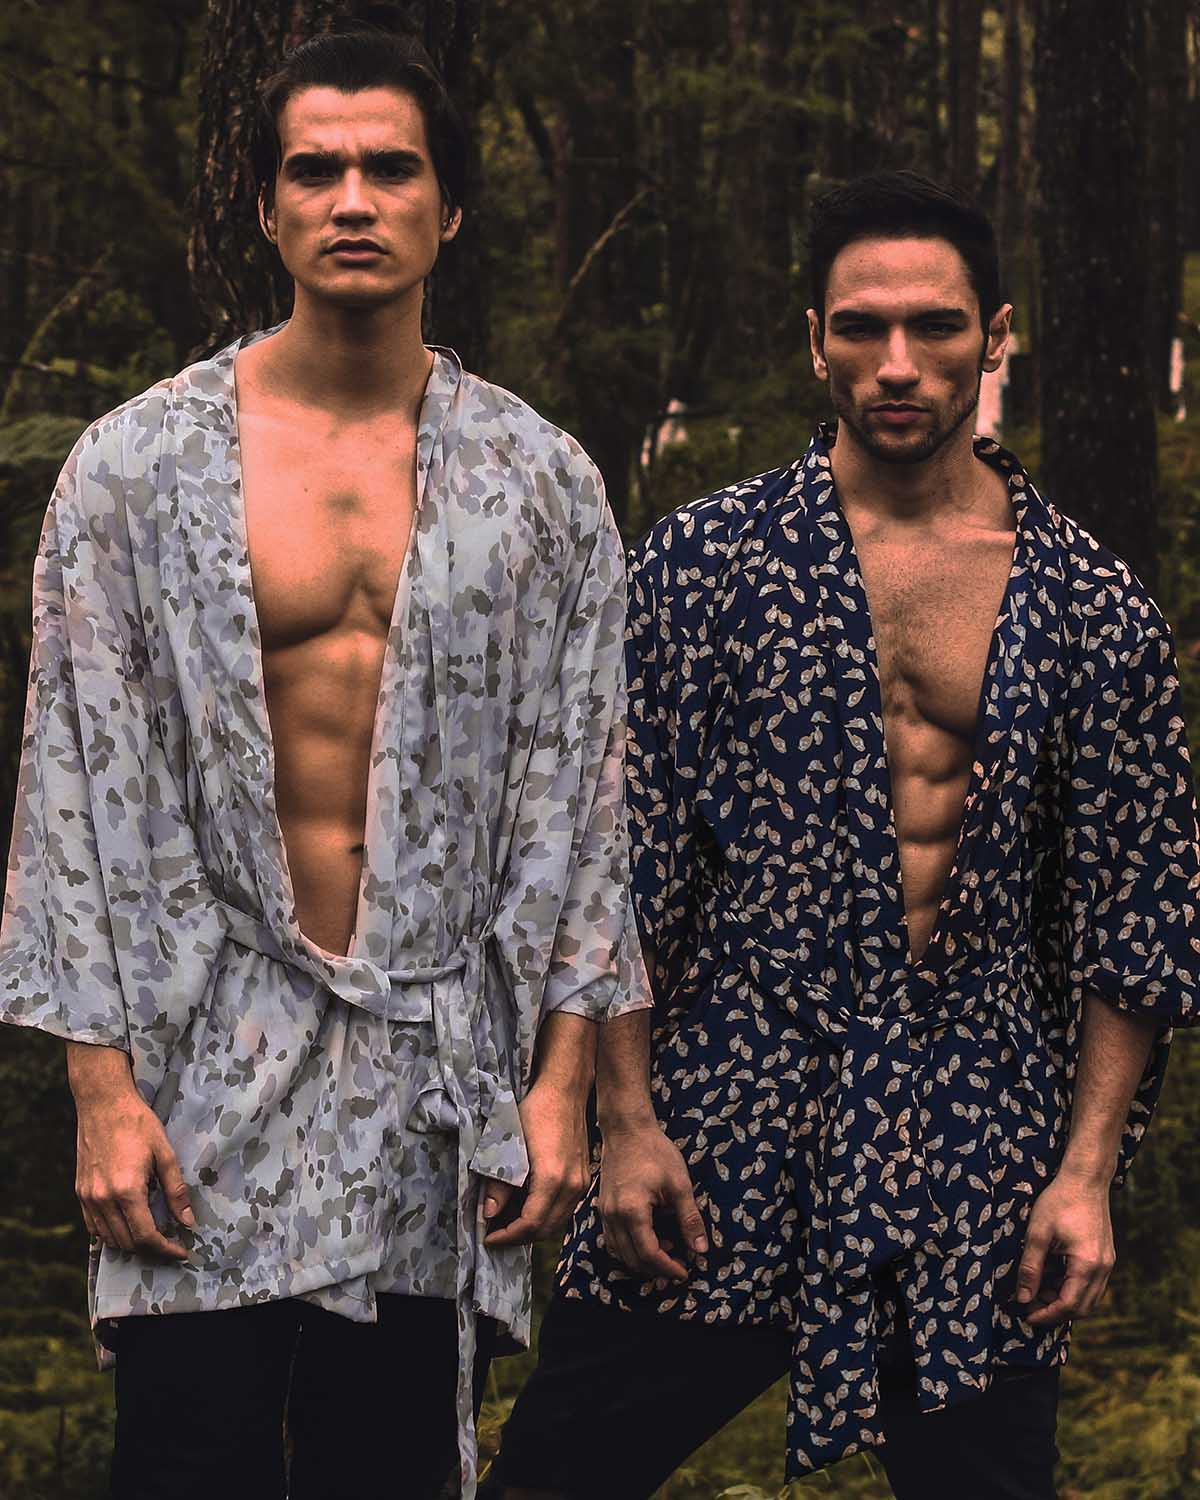 Ivo Cavalcanti and Hans Weiser by Jay Mar for Brazilian Male Model